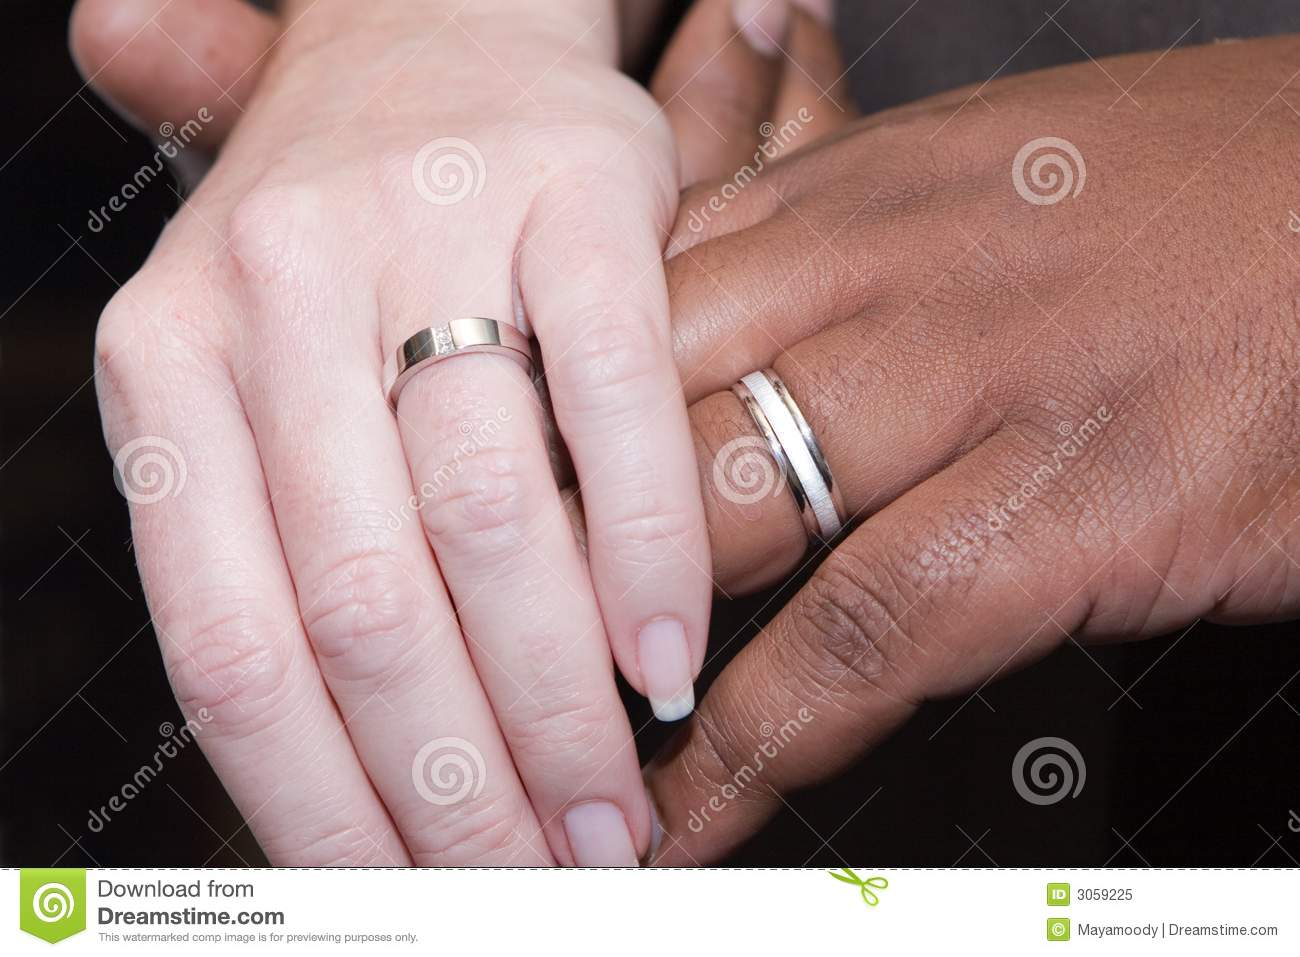 Interracial Hands With Wedding Rings Stock Image - Image ...